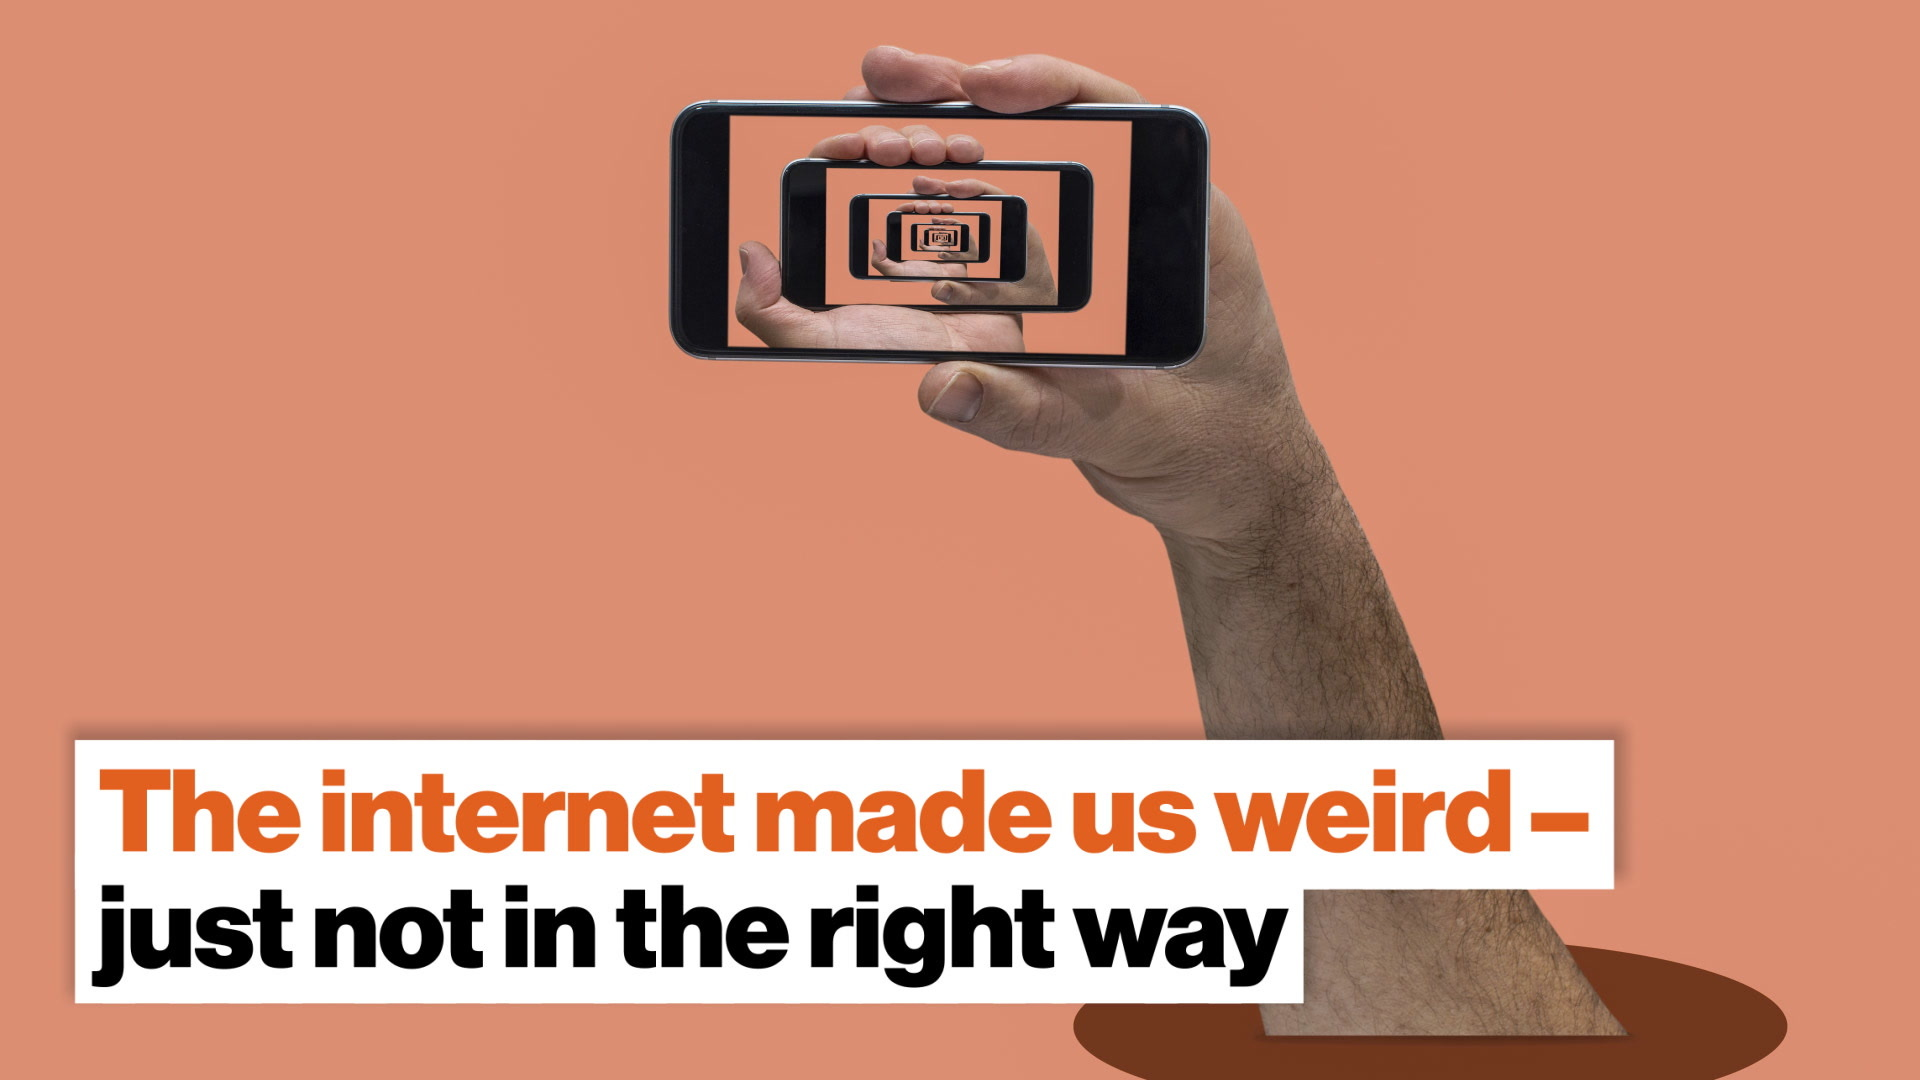 The internet made us weird – just not in the right way